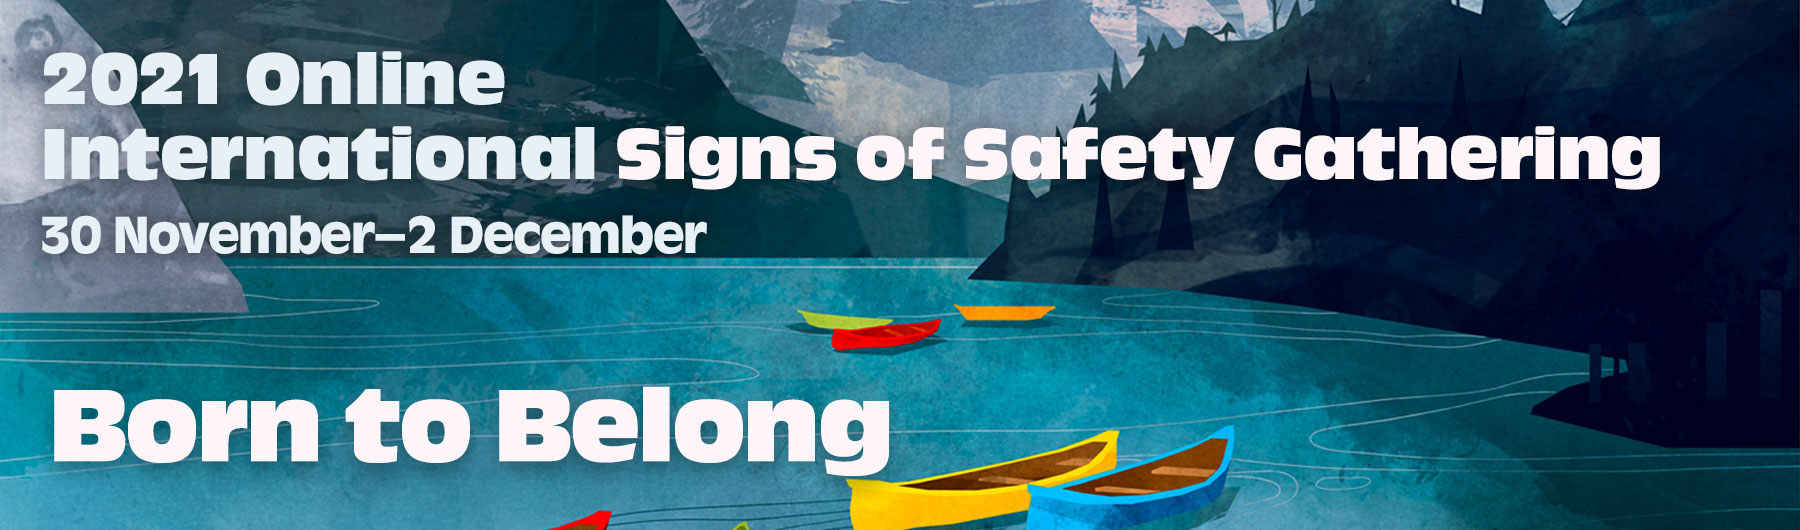 2021 Online International Signs of Safety Gathering